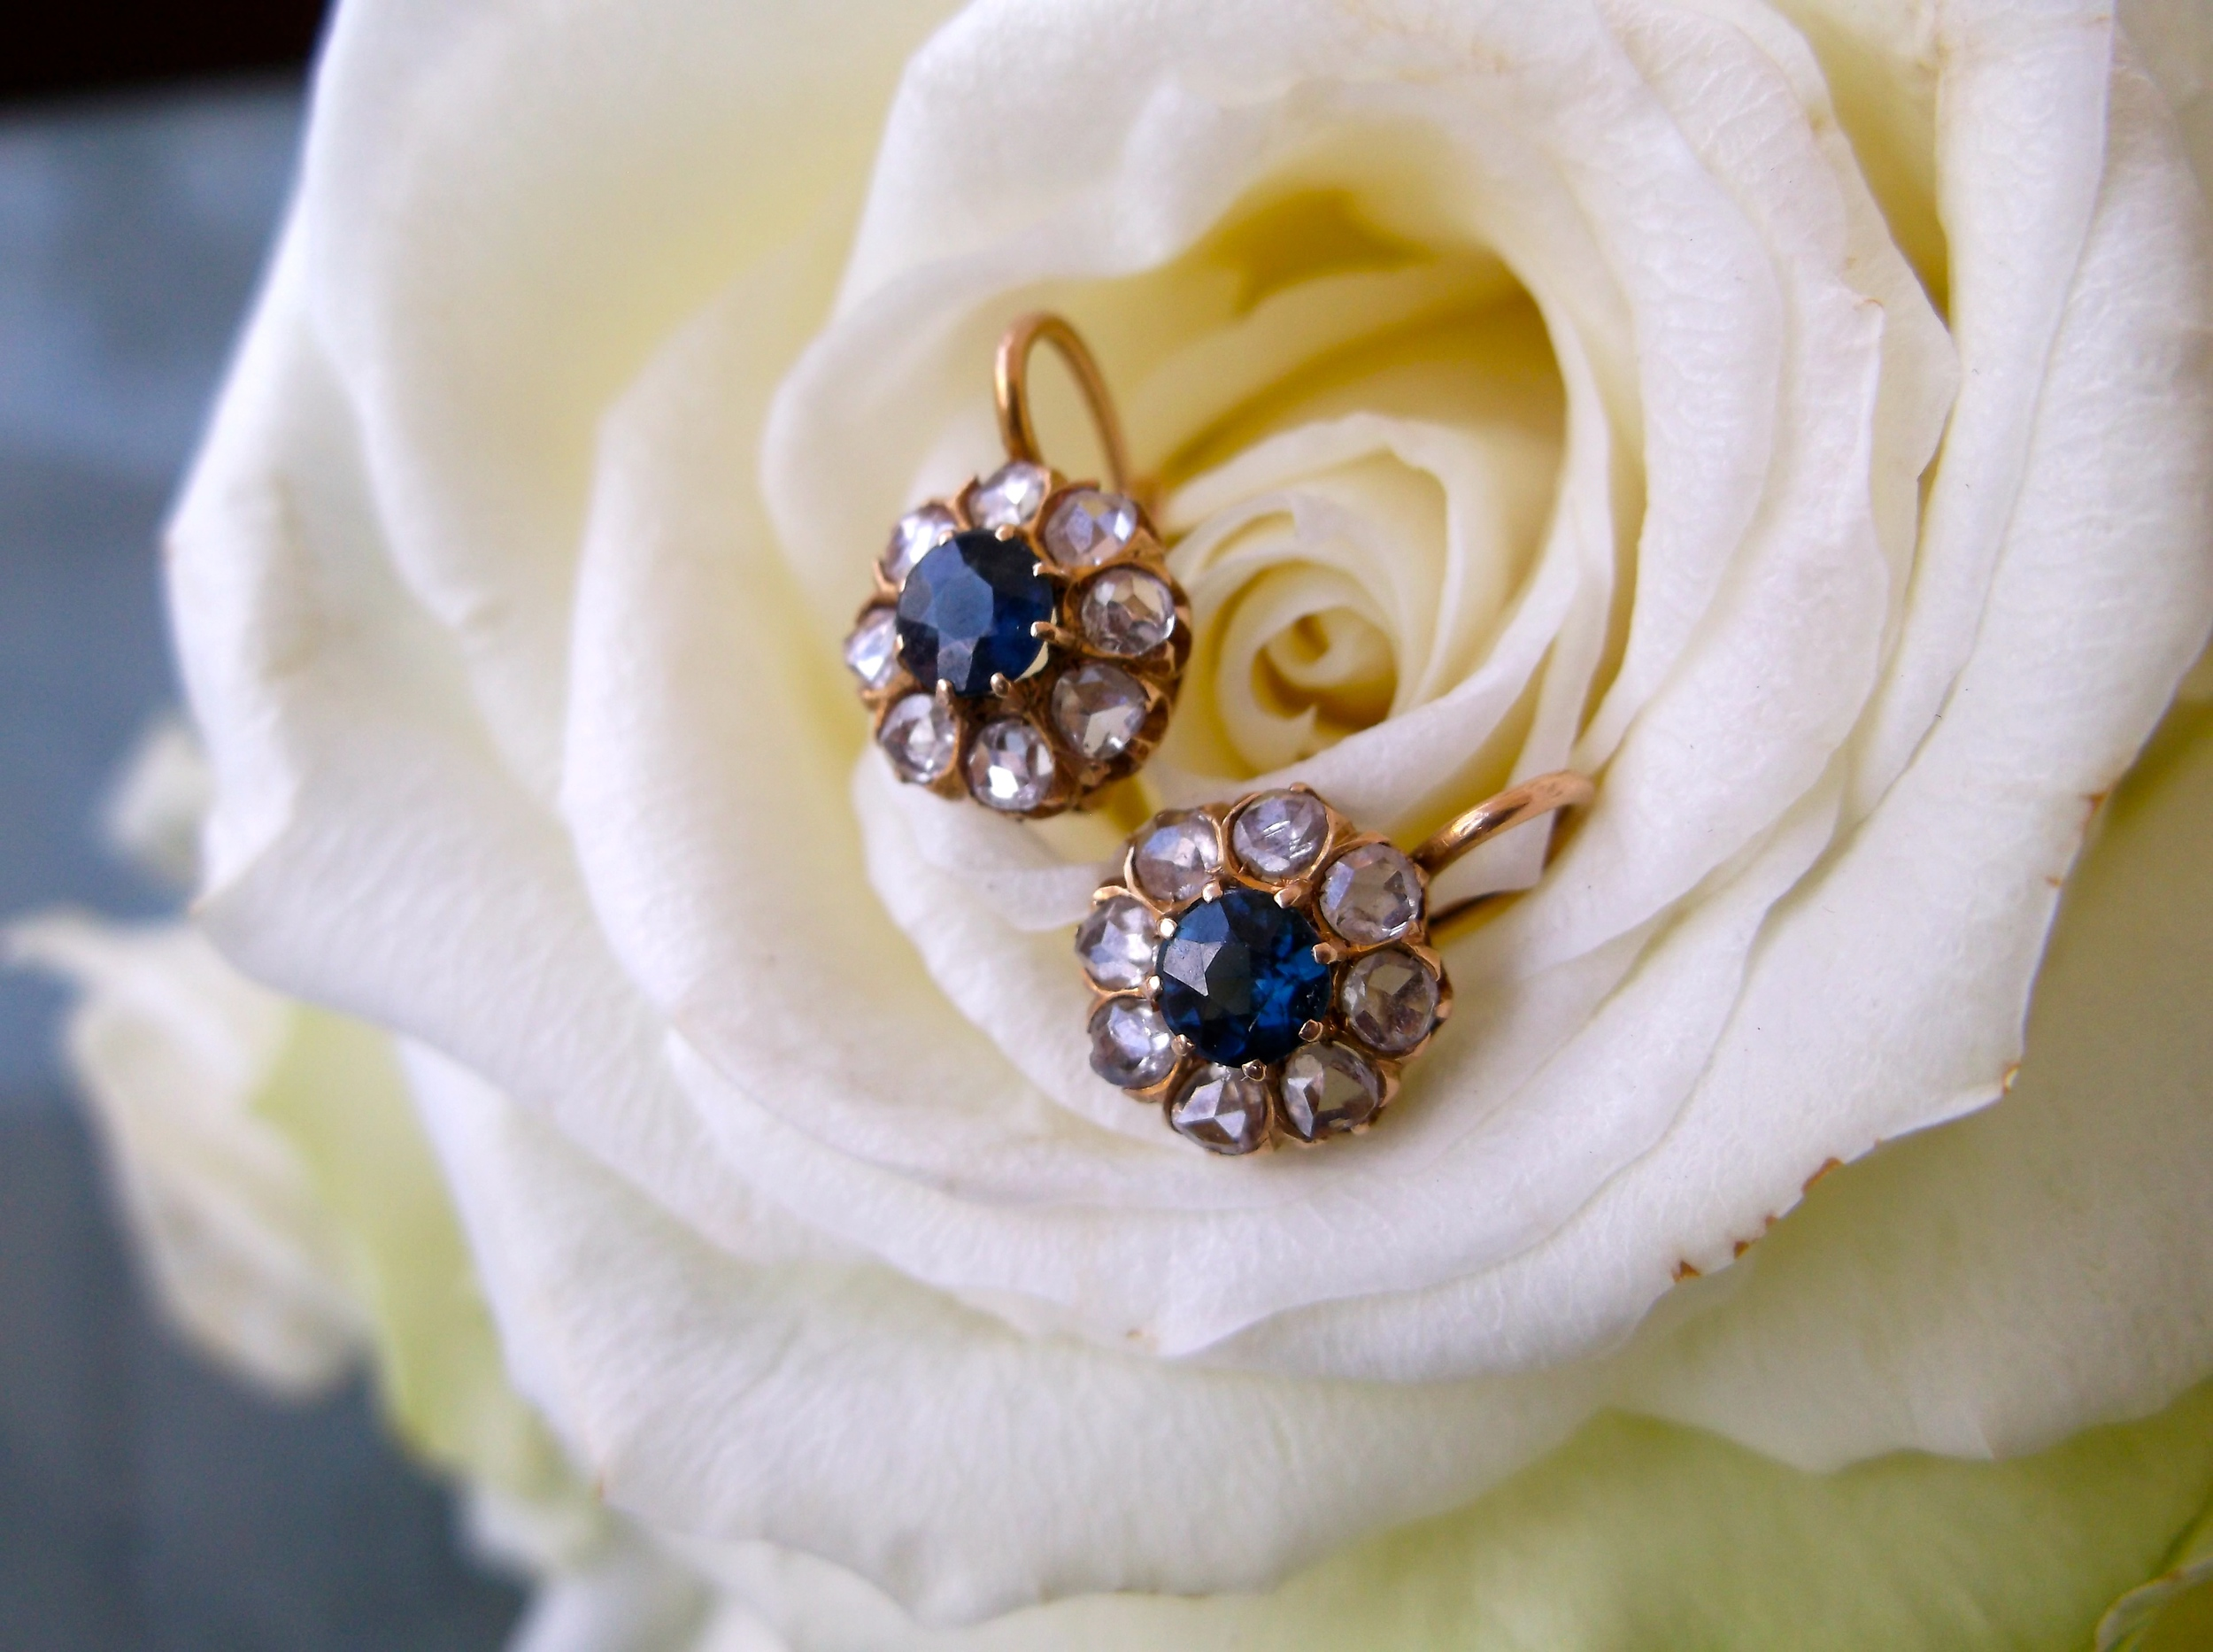 SOLD - Victorian era rose cut diamond and sapphire dainty drop earrings set in yellow gold.